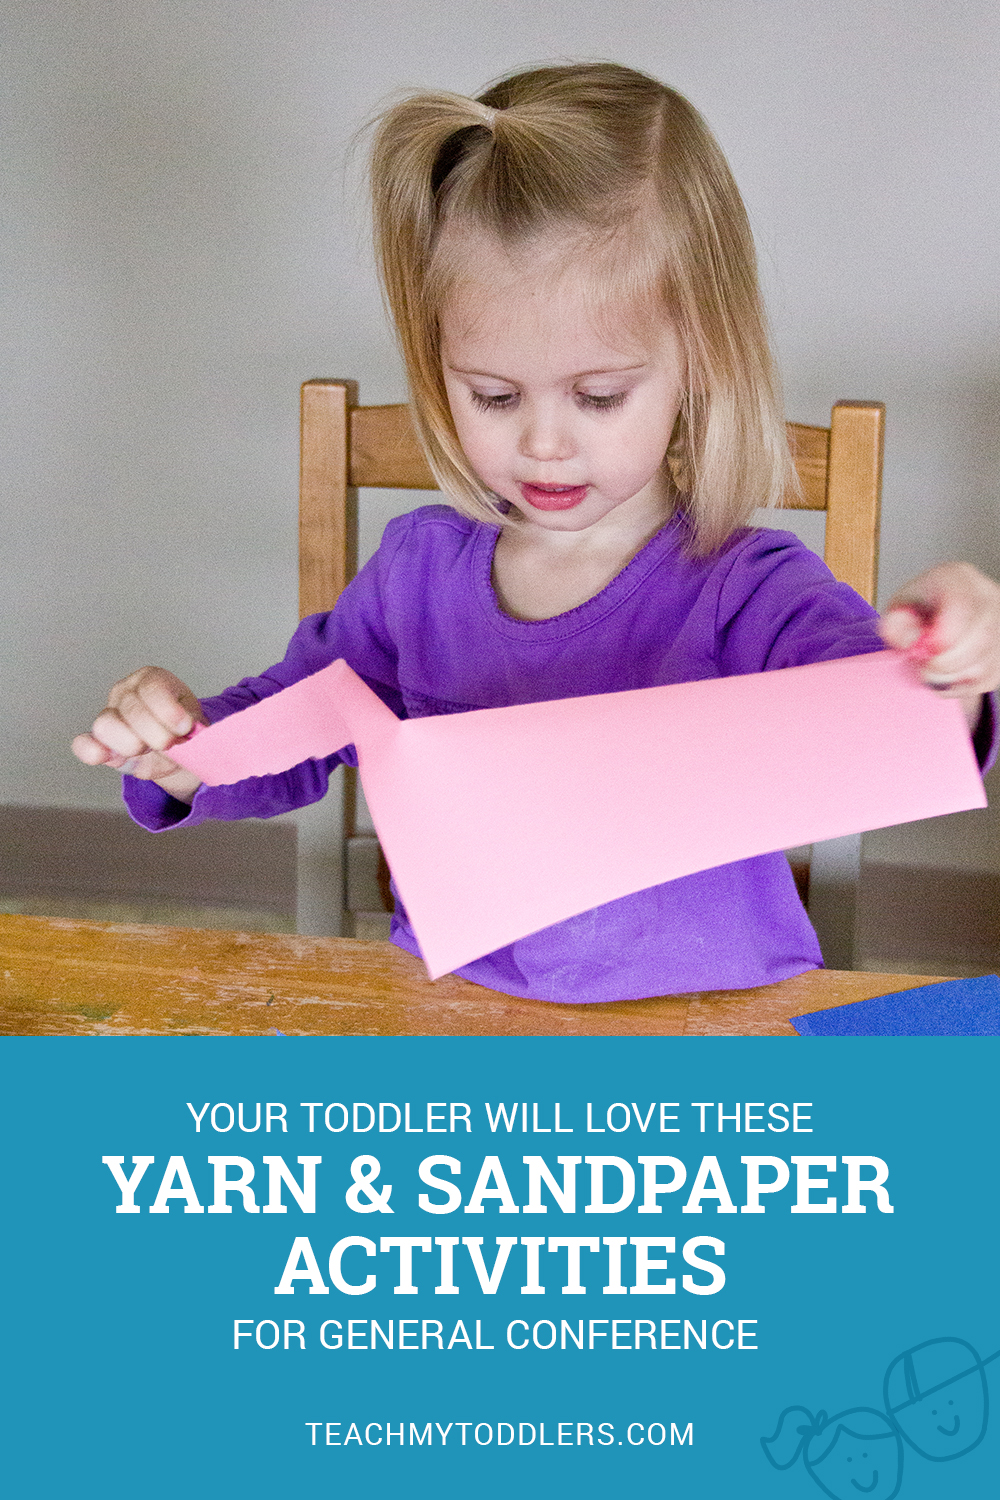 Your toddlers will love these yarn and sandpaper activities for general conference